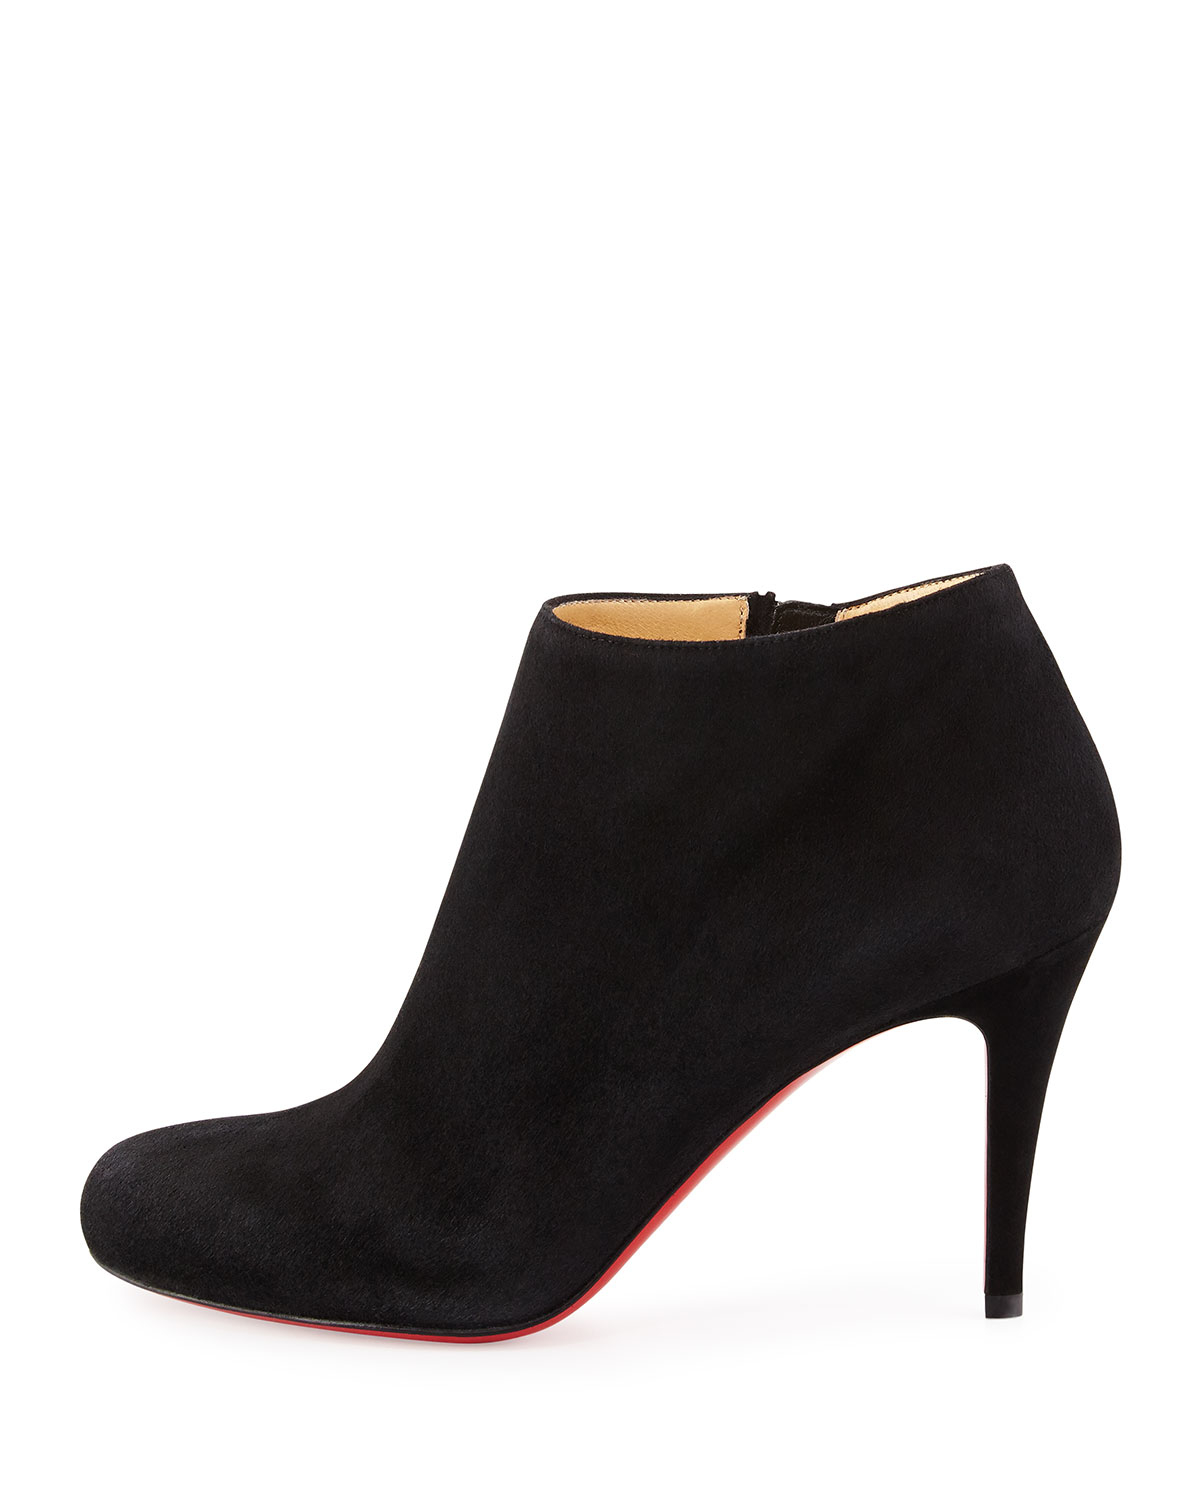 Lyst Christian Louboutin Belle Round Toe Suede Red Sole